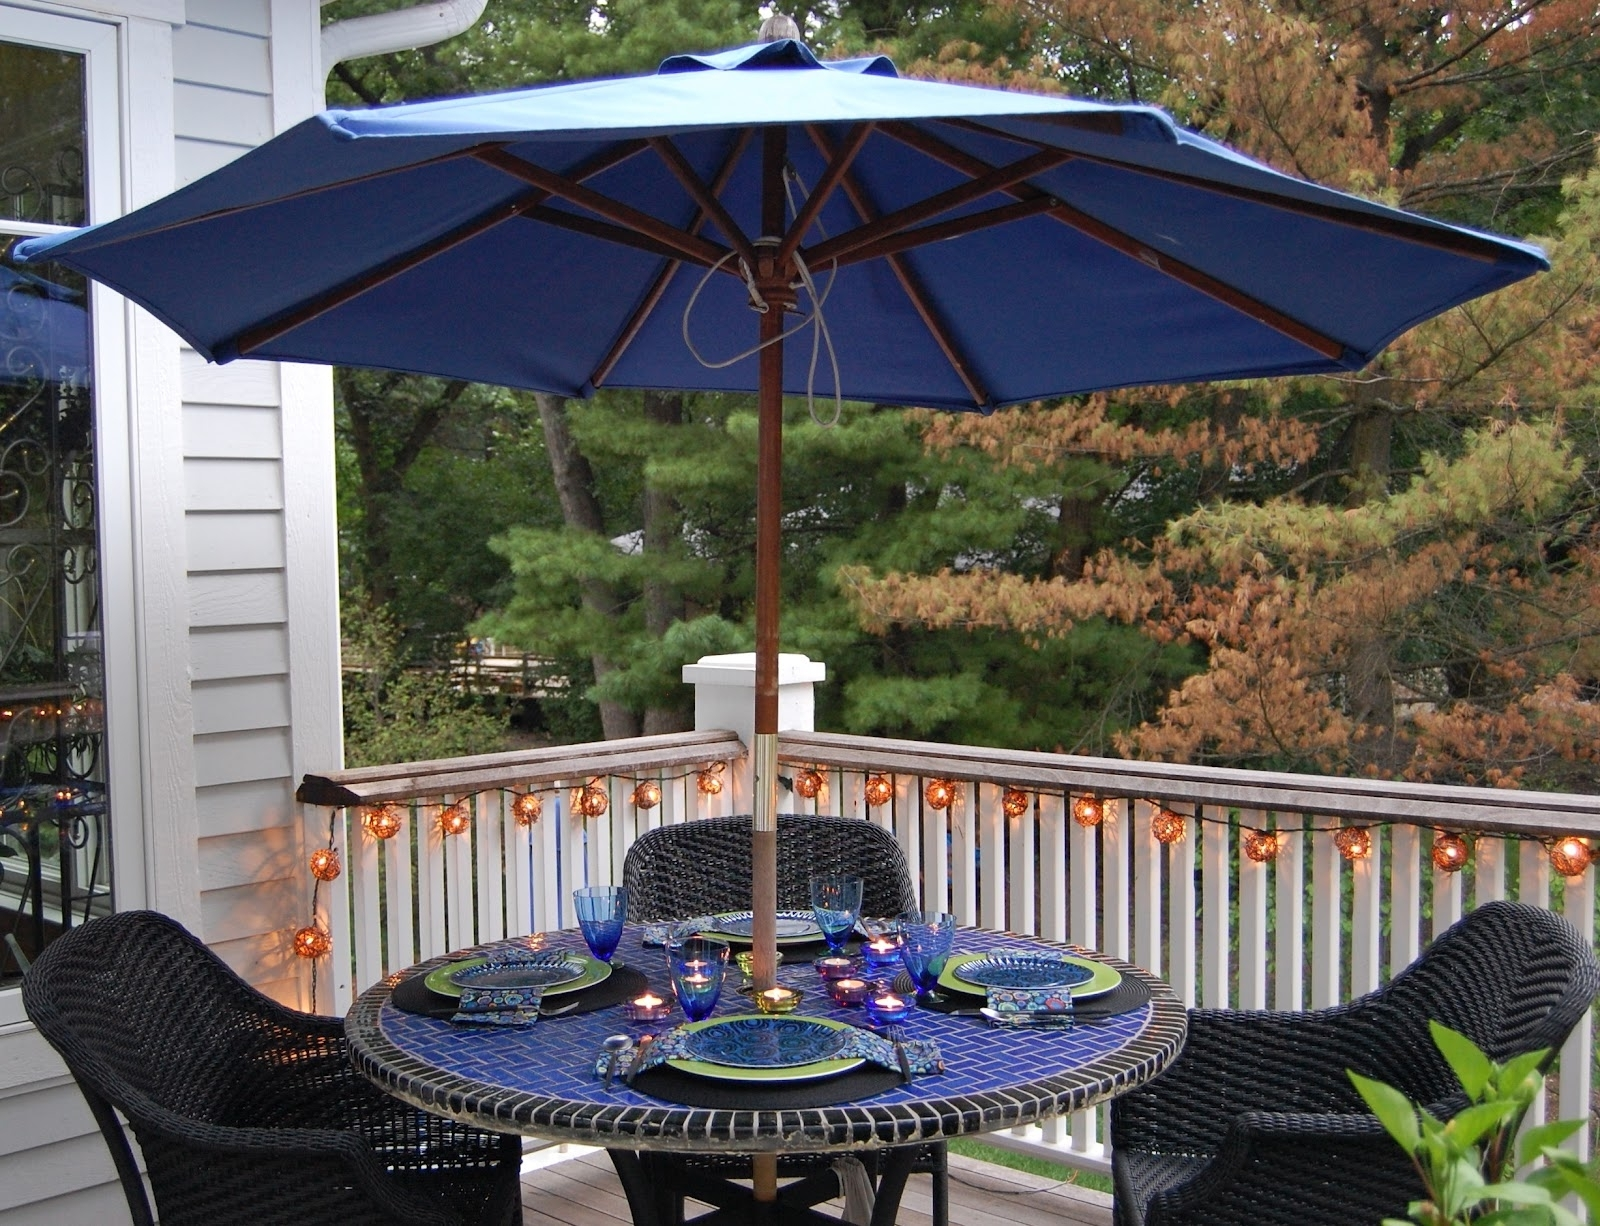 2019 Walmart Umbrellas Patio Within Furniture: Outdoor Outdoor Patio Sets With Umbrella Awesome Design (View 13 of 20)